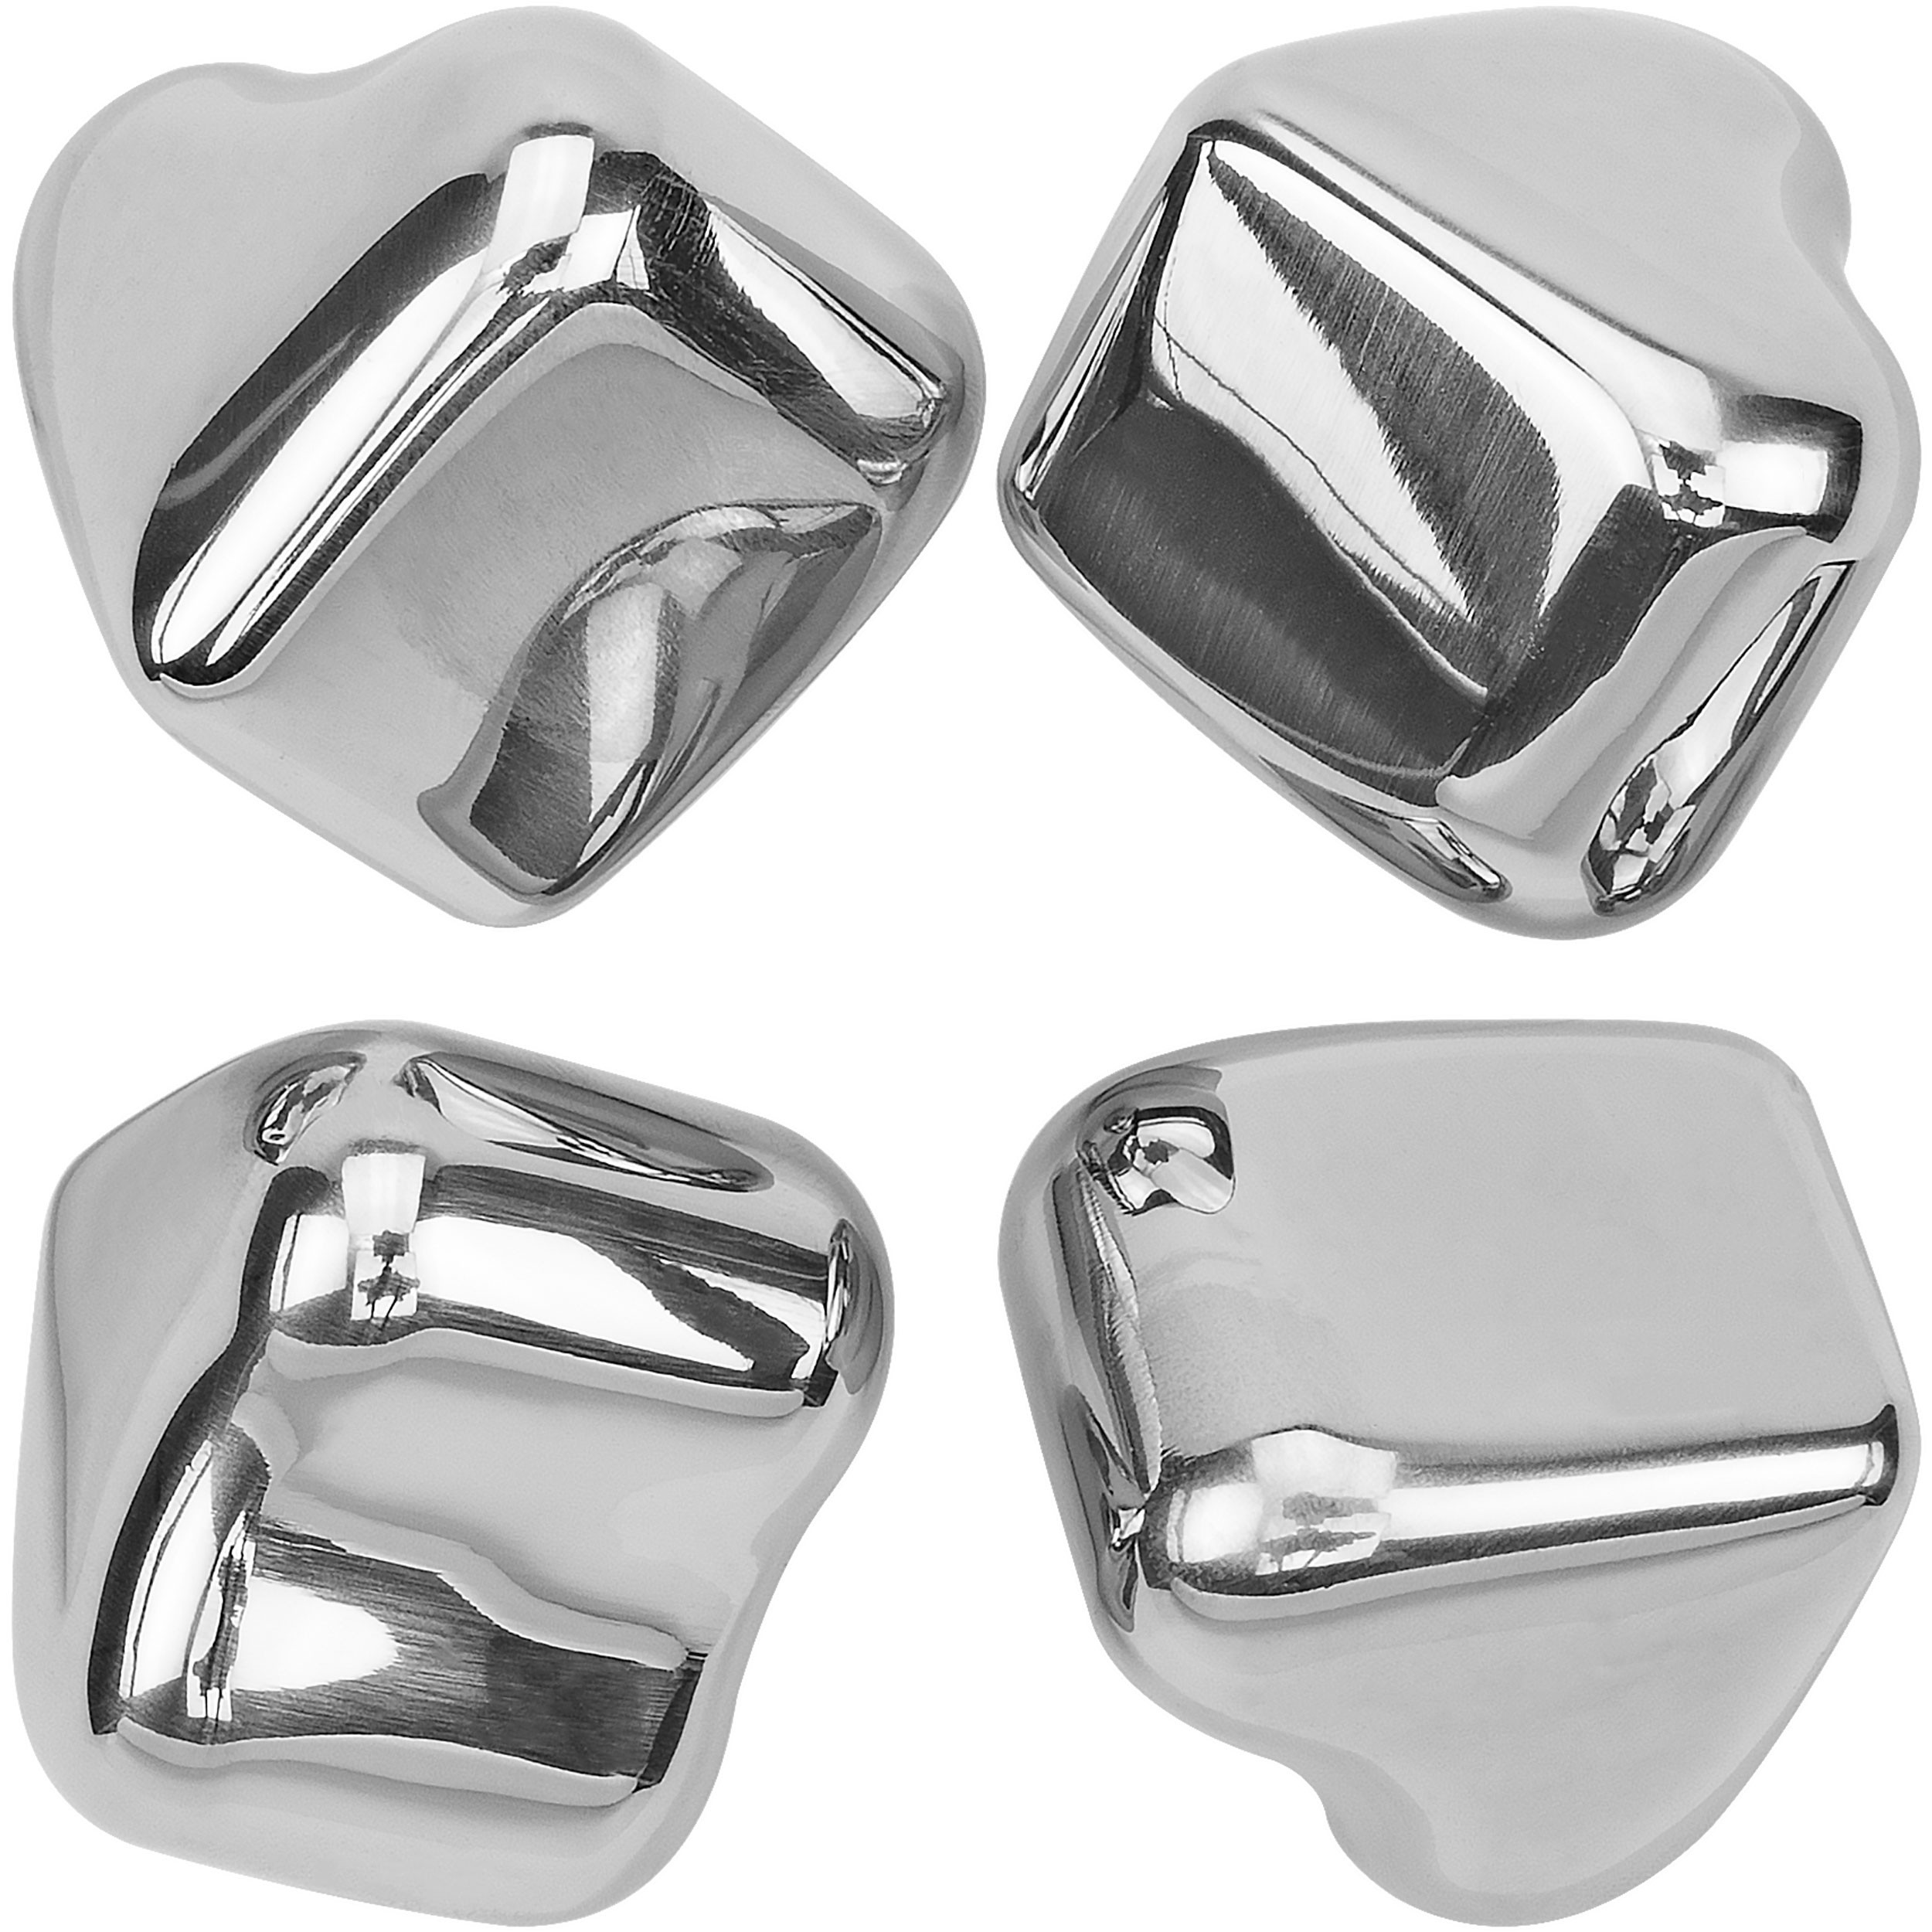 Southern Homewares Heart Shape Stainless Steel Chilling Ice Cubes Reusable Tray (Set of 4), Silver